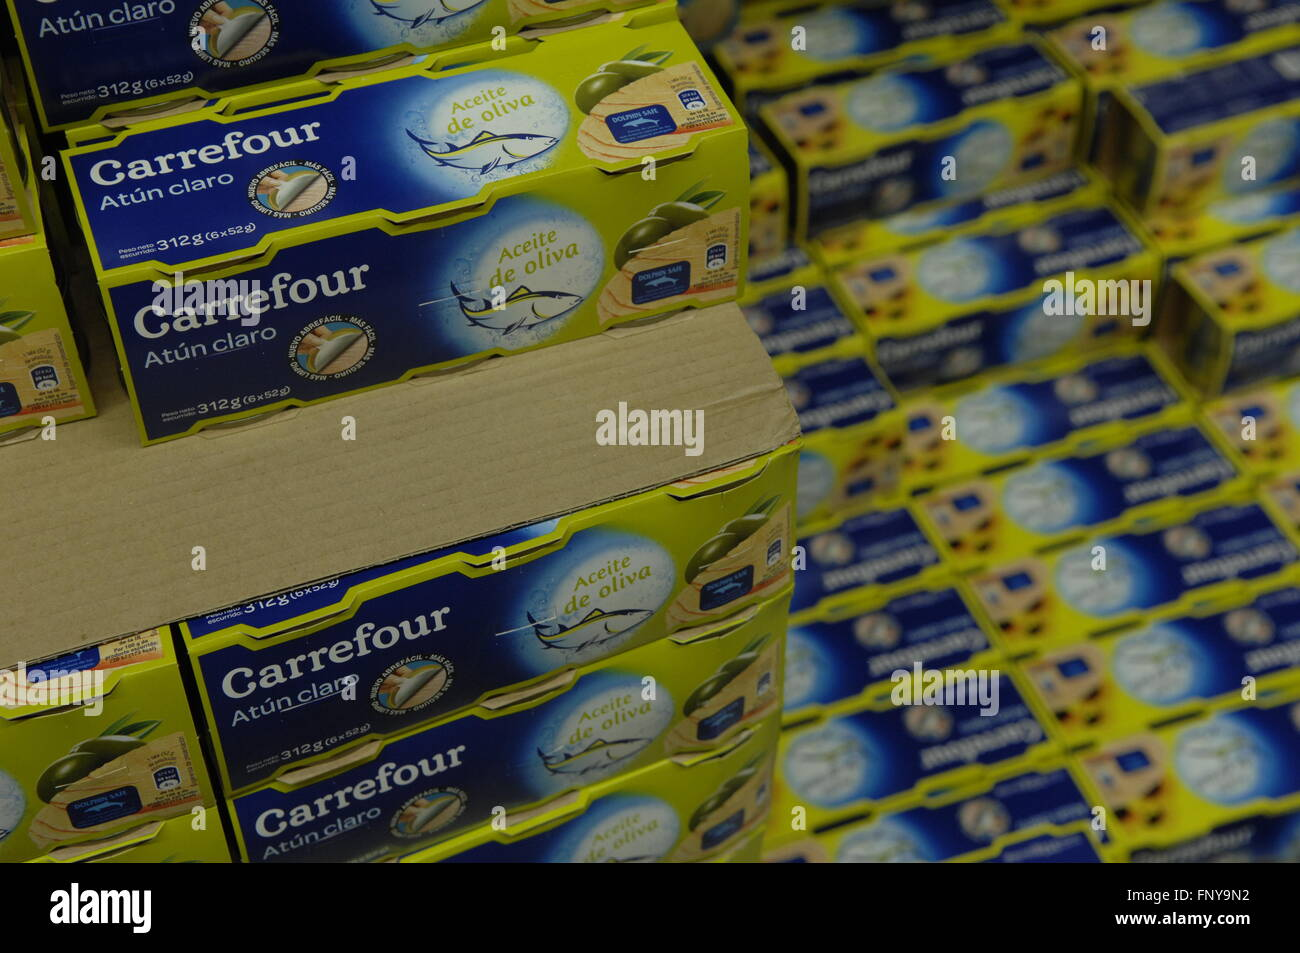 Carrefour own brand Tuna stacked in their Supermarket. - Stock Image